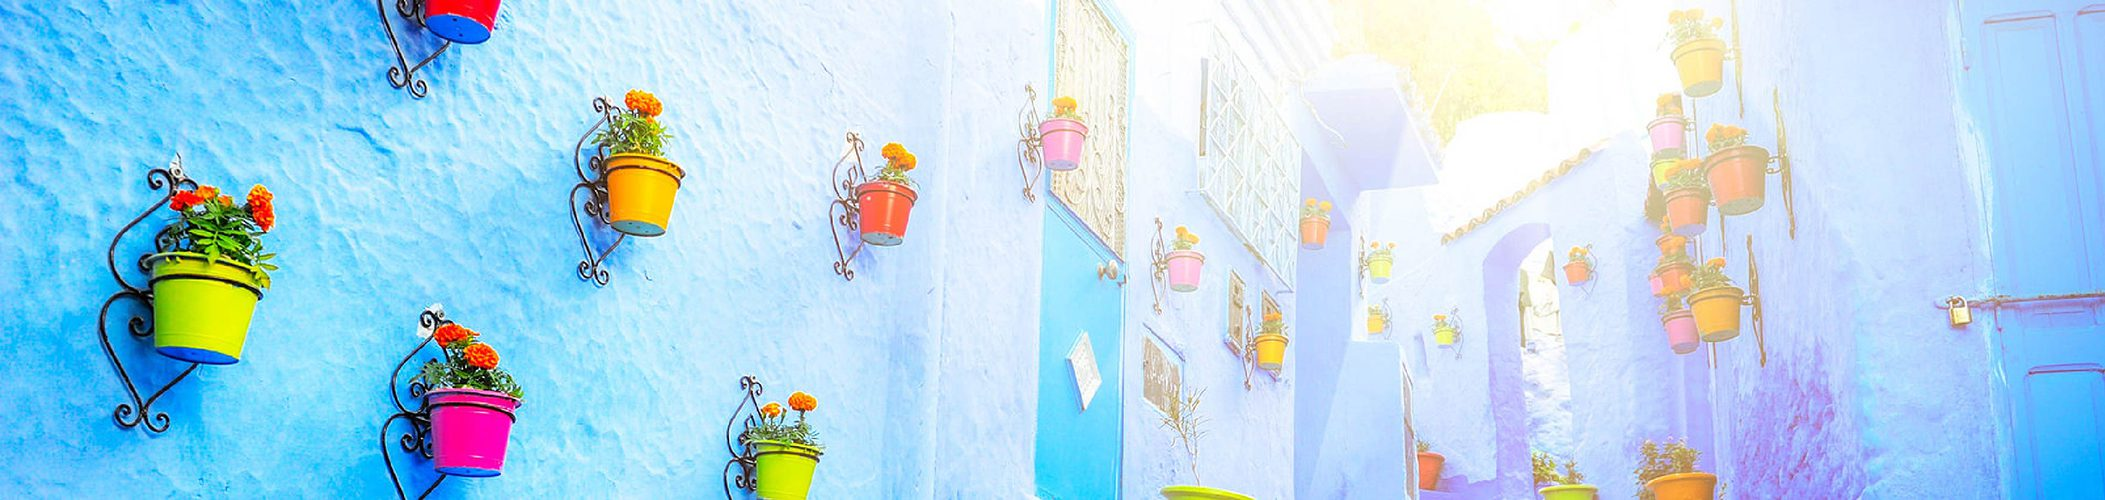 The blue pearl of Morocco: Explore the blue city of Chefchaouen